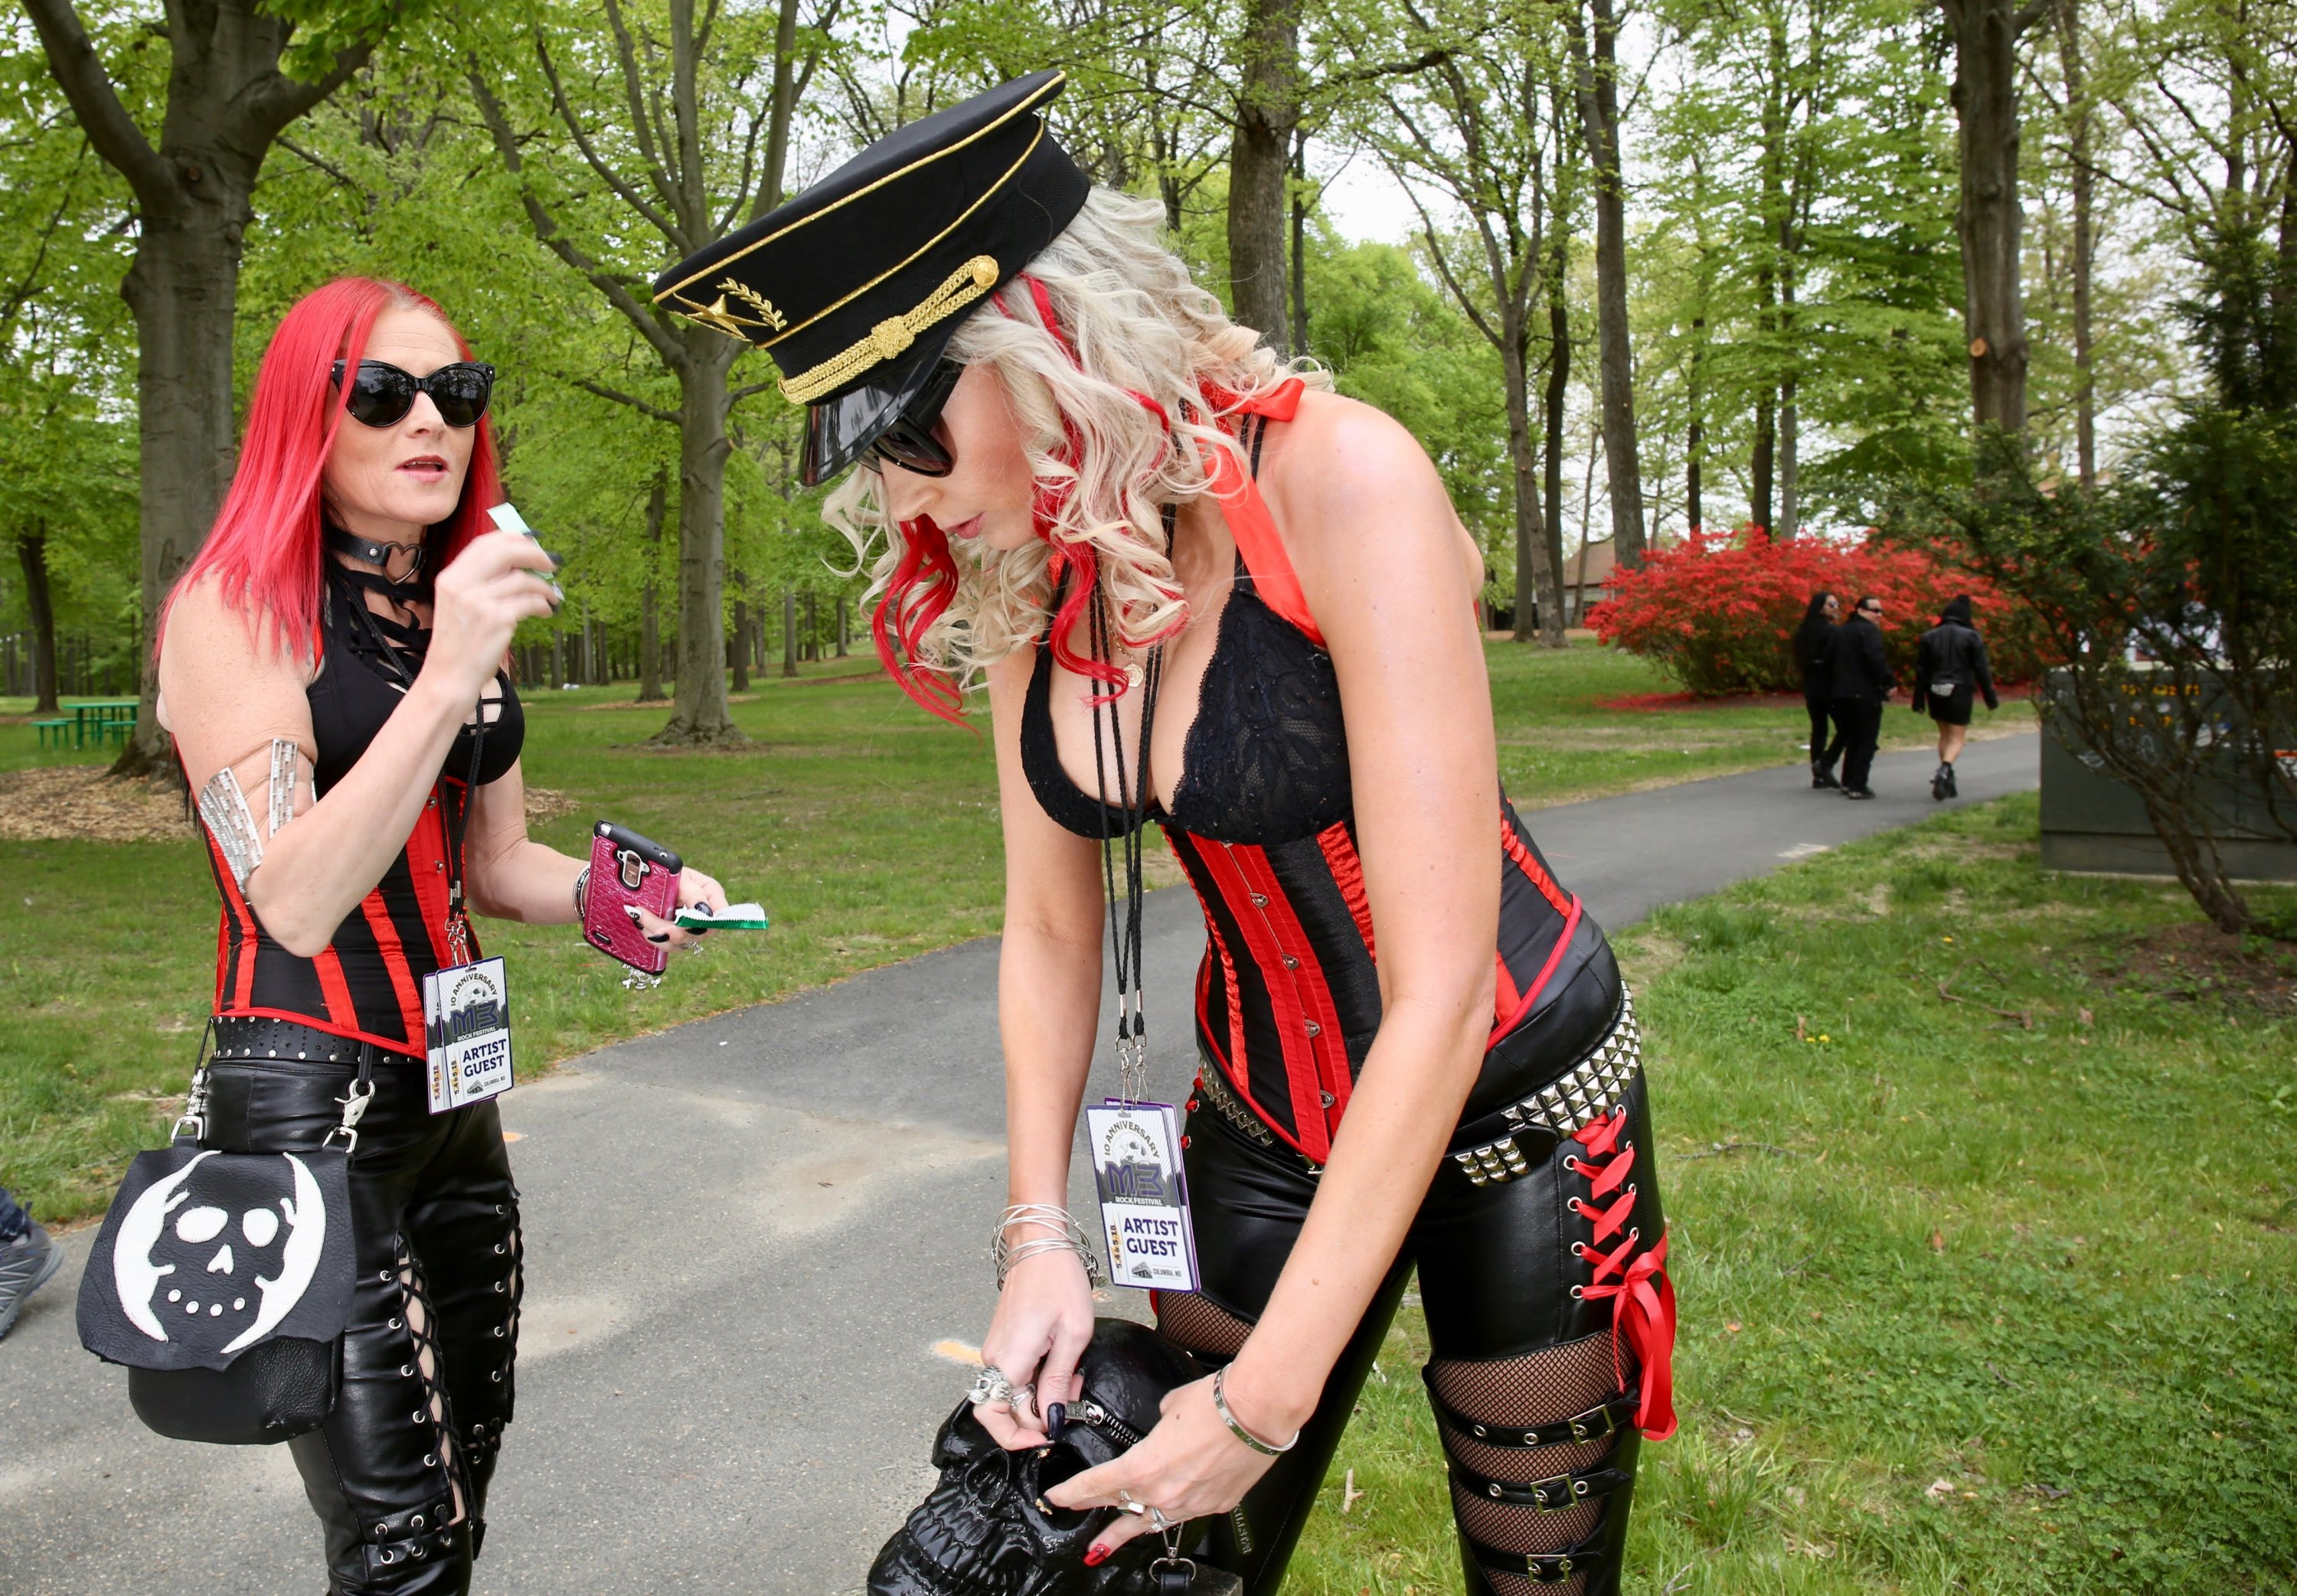 Tina Richardson and Angie Johnston arrive at the festival. They do concert merchandising for Live Nation and were guests of one of the performing bands, Faster Pussycat.